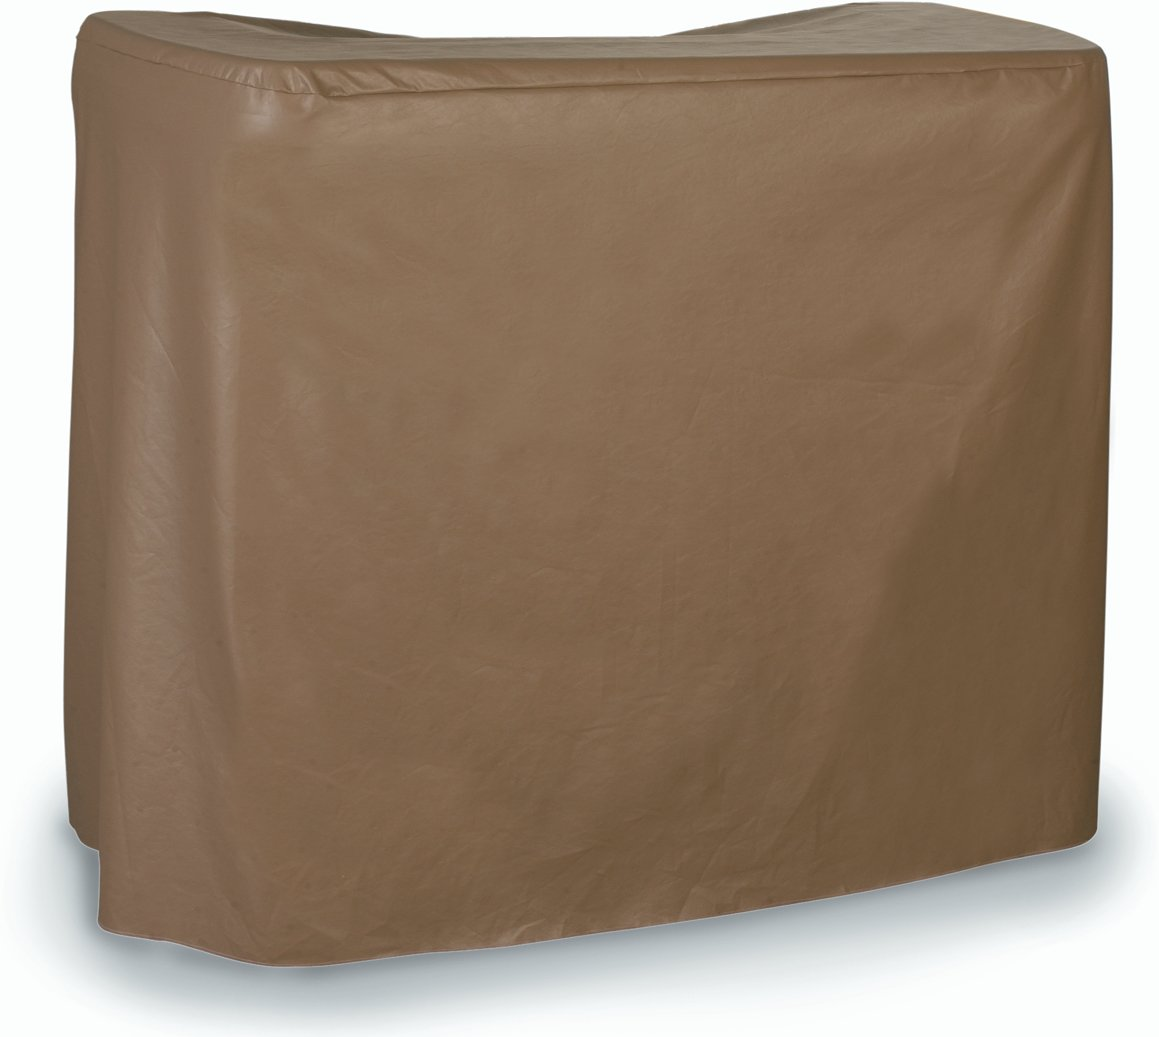 Carlisle 755580 Maximizer LDPE Portable Bar Cover, 56-11/32 x 28.51 x 45-1/2'', Taupe